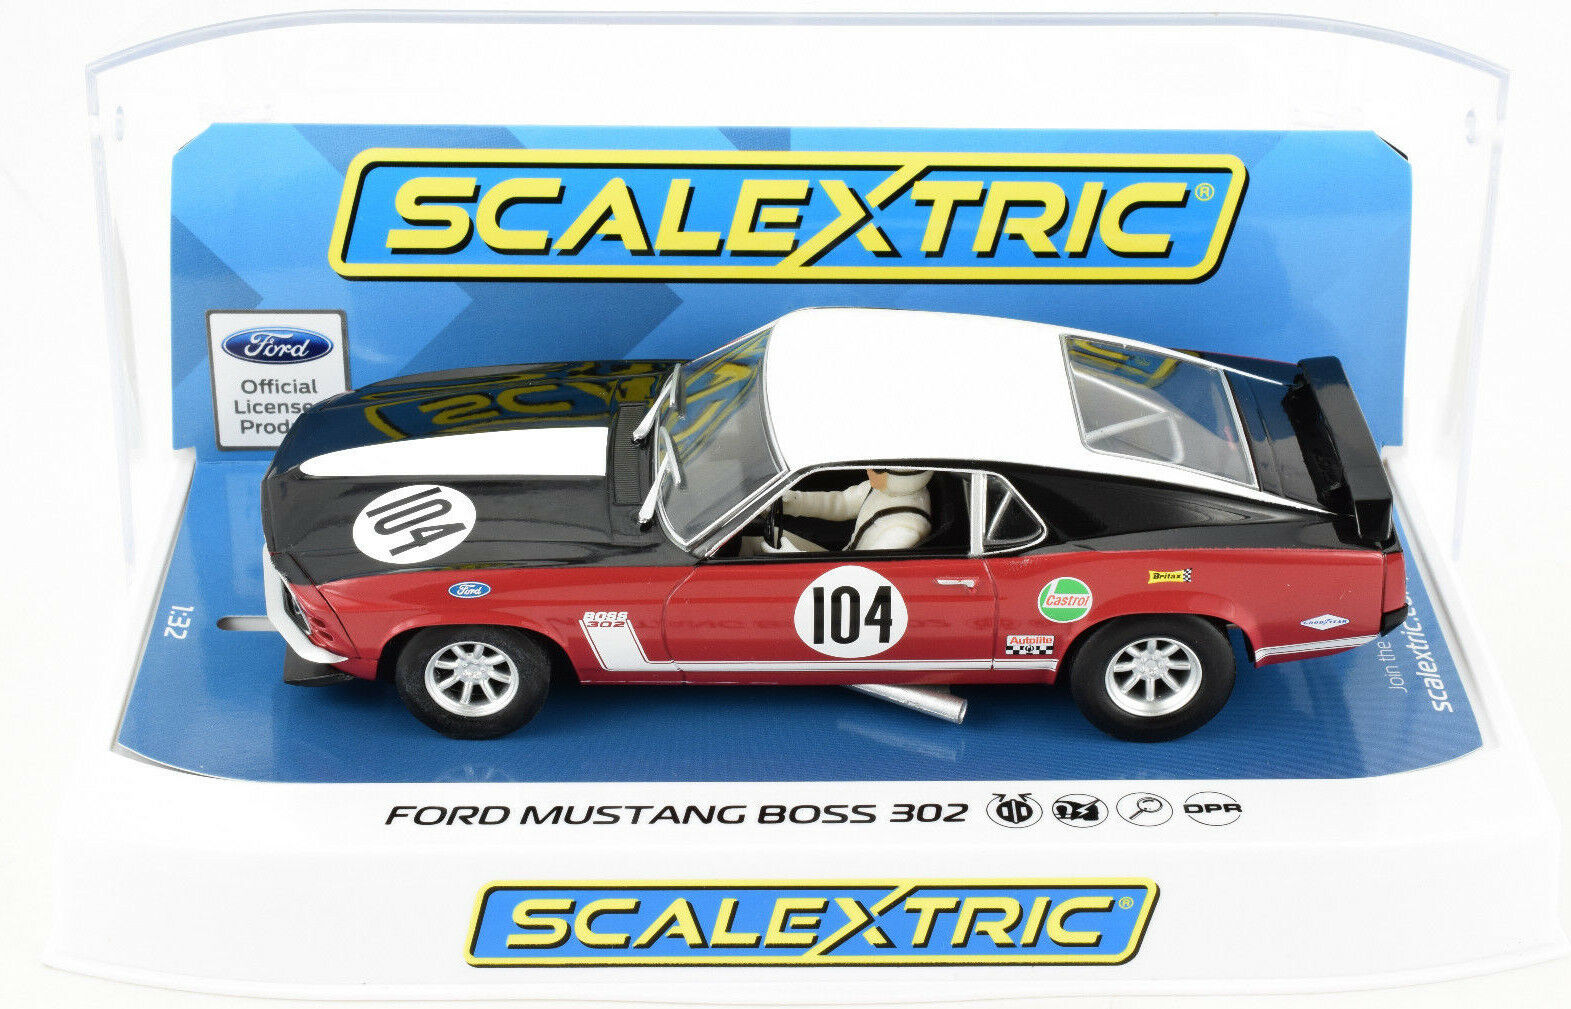 Scalextric Ford Mustang Boss 302 - Saloon Champ. DPR 1 32 Scale Slot Car C3926